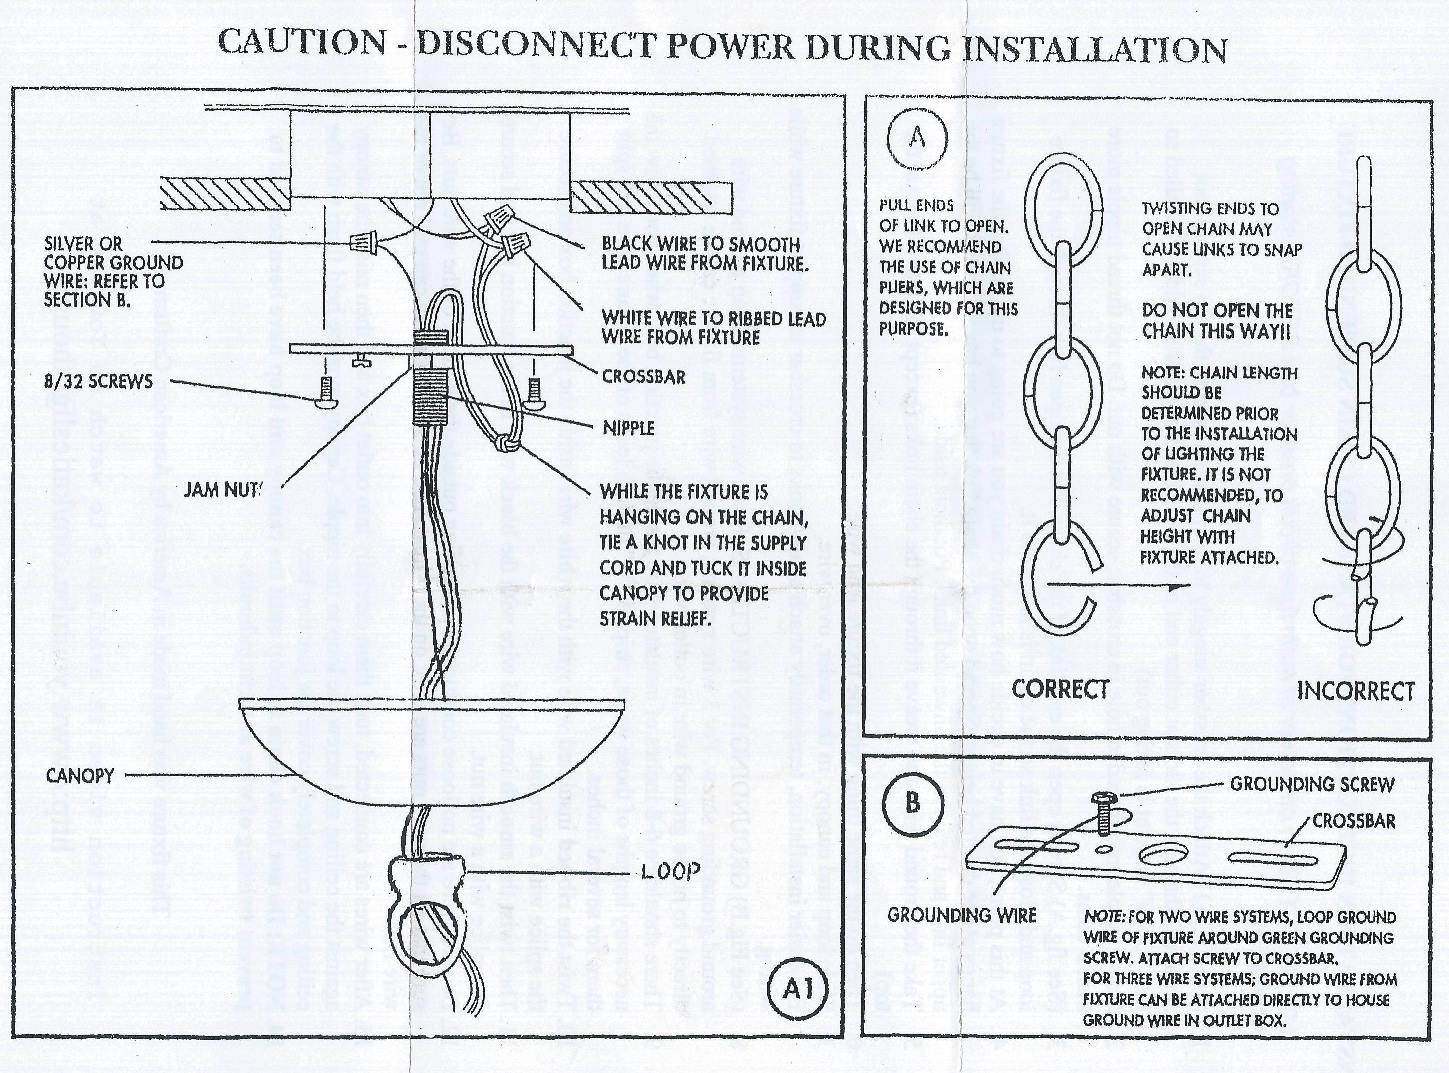 Chandelier step by step installation guide aloadofball Choice Image